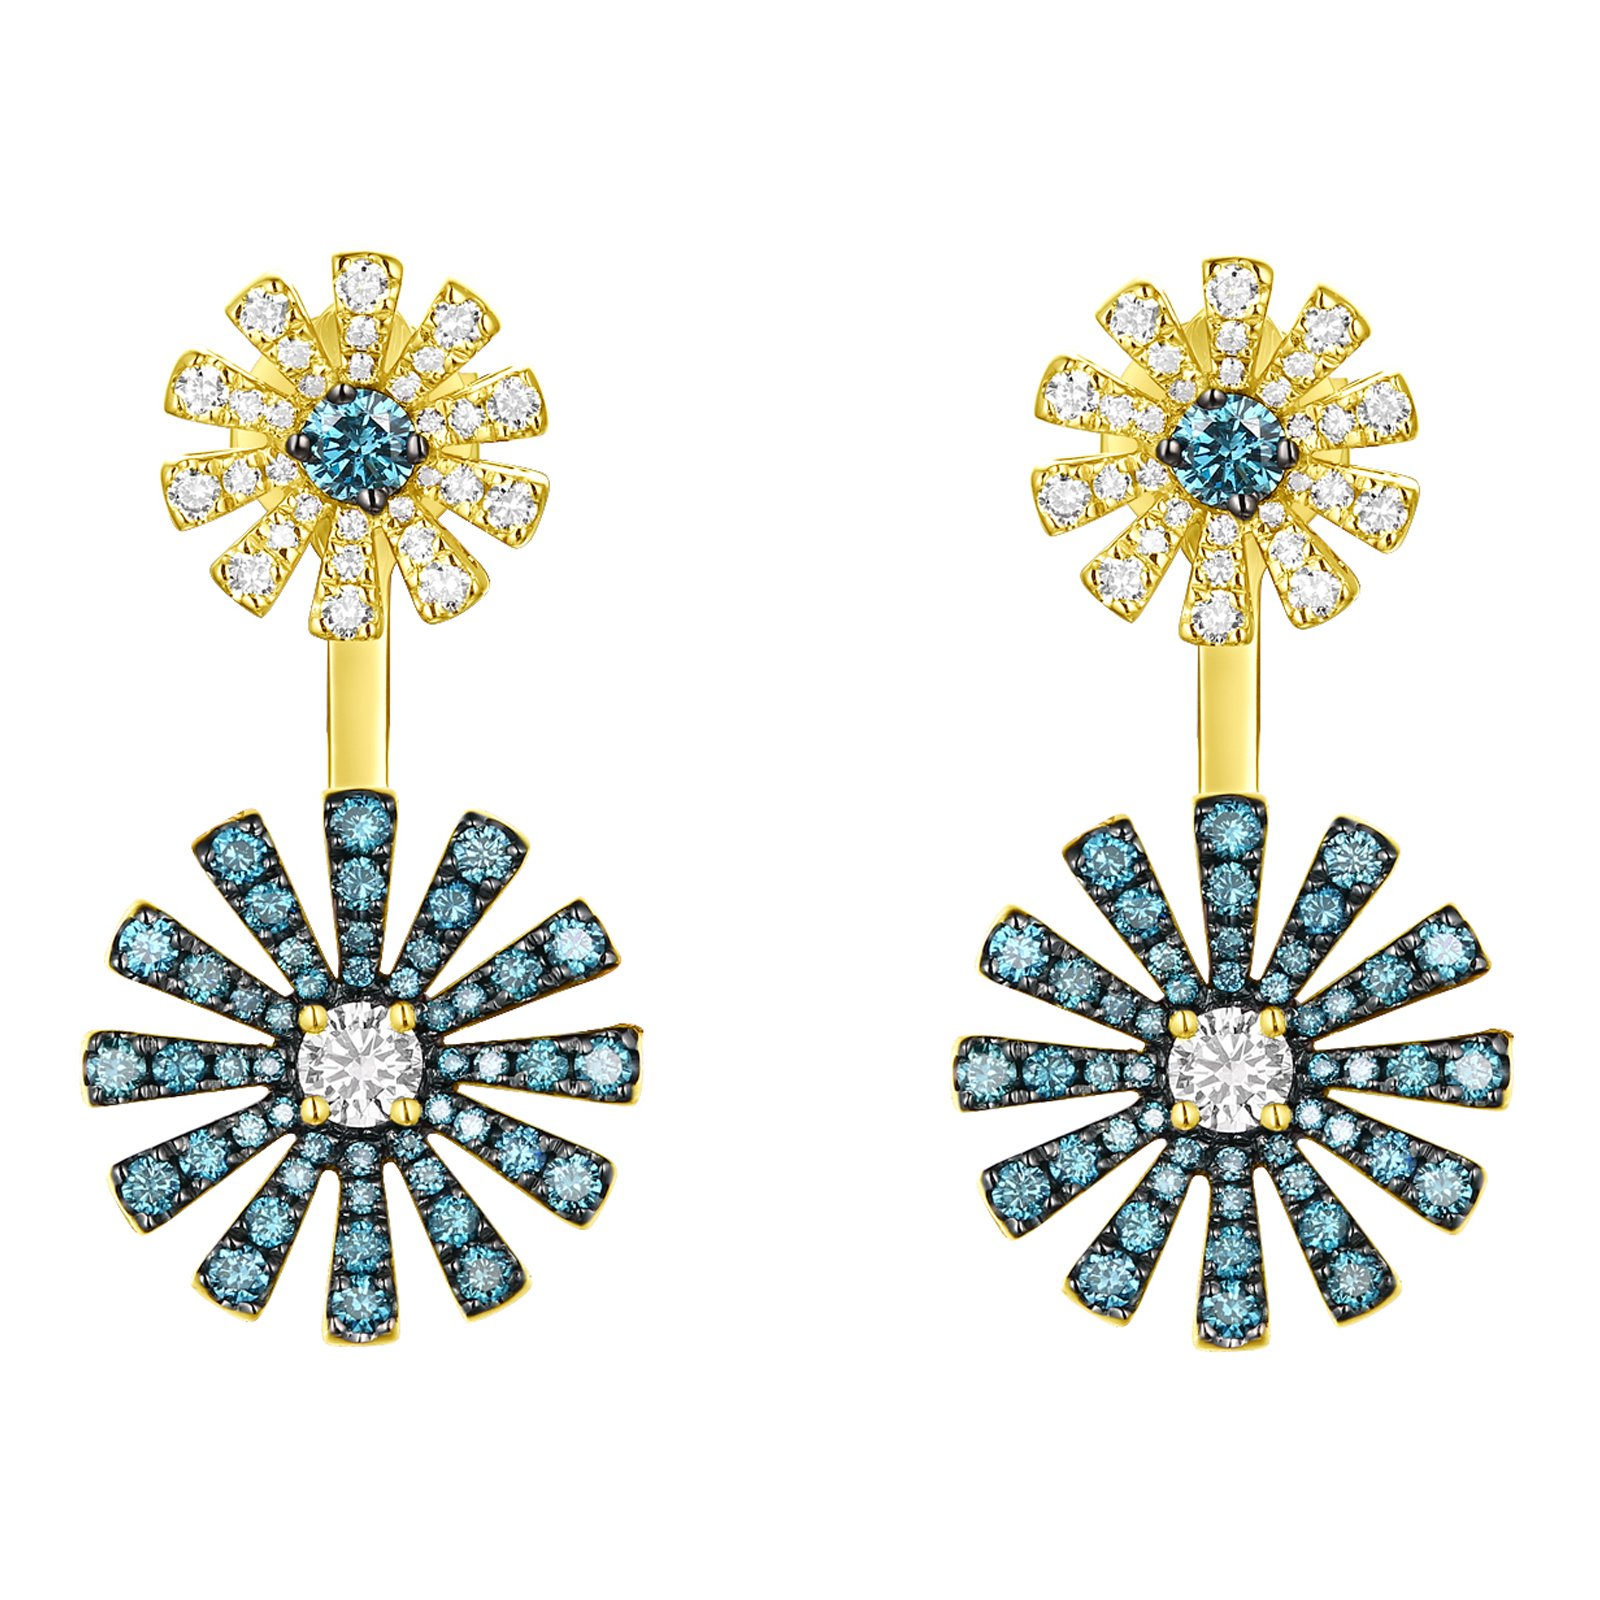 Prism Jewel 1.14Ct Ice Blue/SI1 Diamond With G-H/SI1 Diamond Front Back Push Back Earring, 10k Yellow Gold